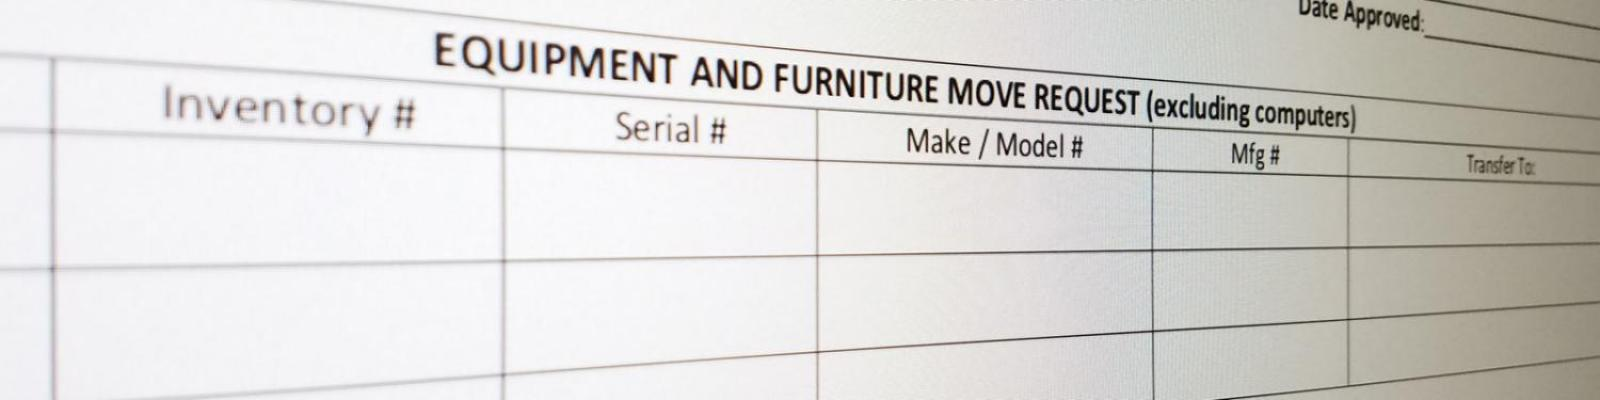 equipment and furniture move request form